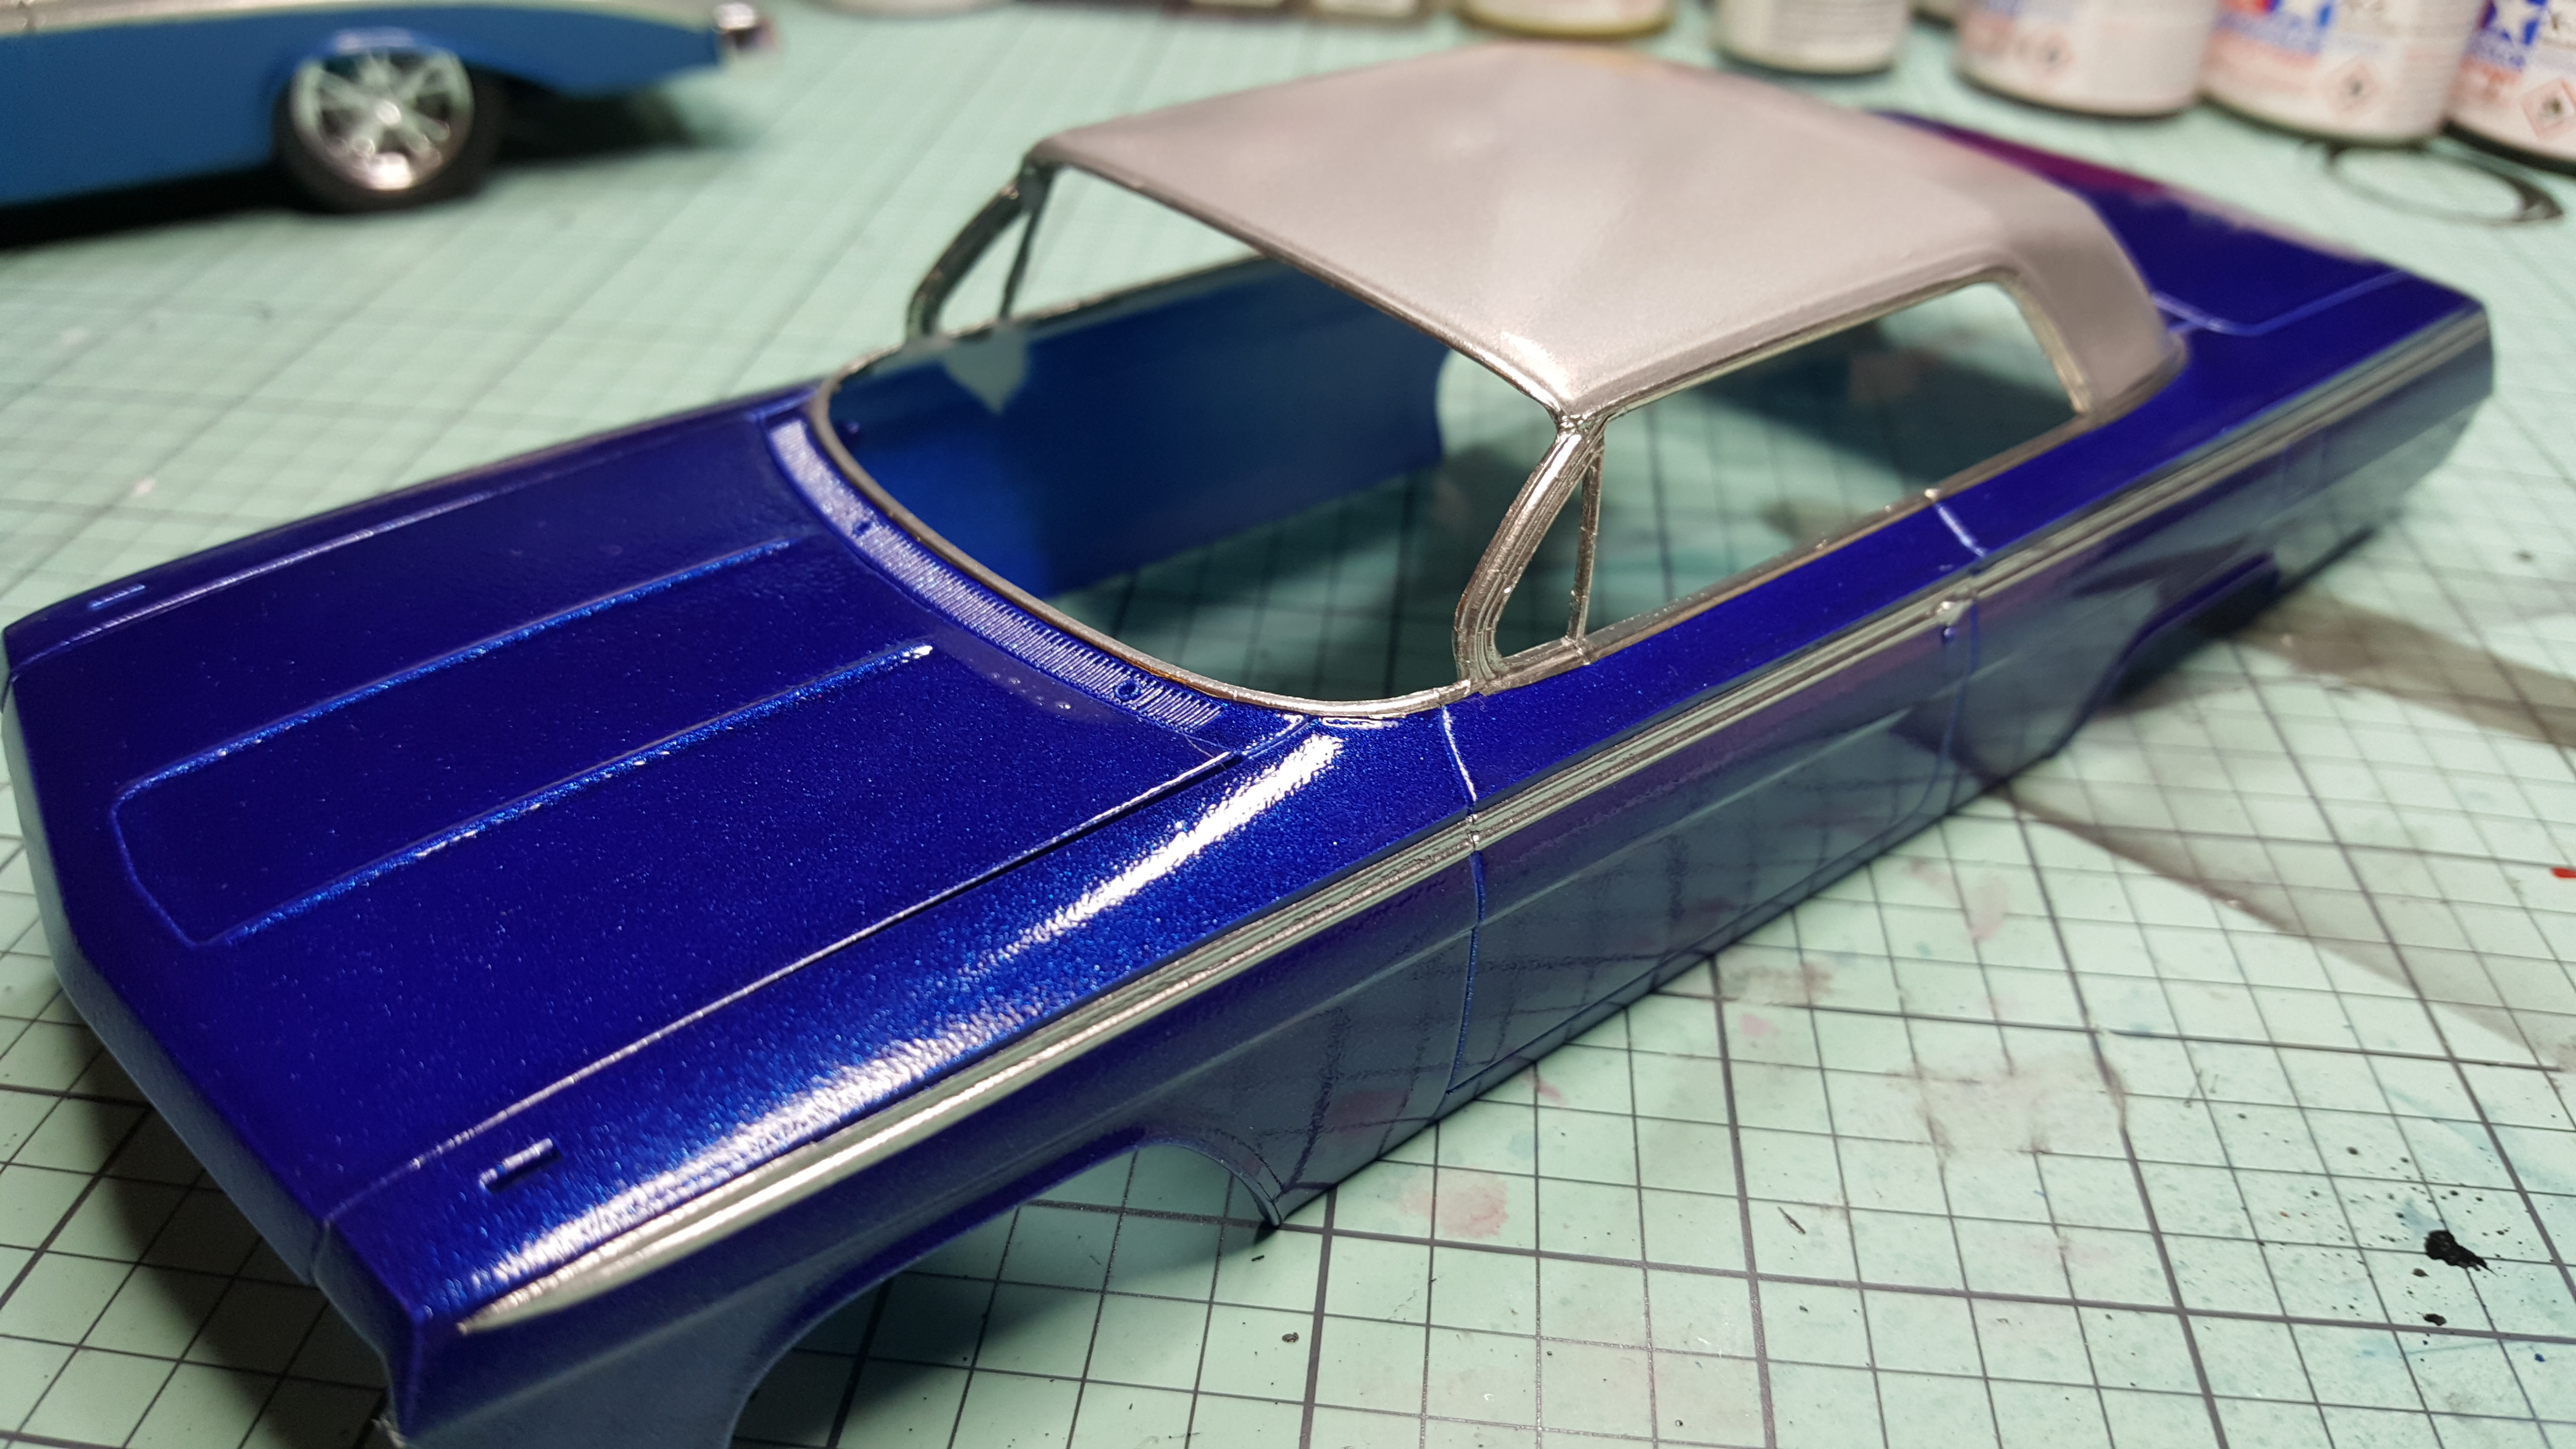 How to spray clear coat without orange peel - 20170228_061646 Jpg